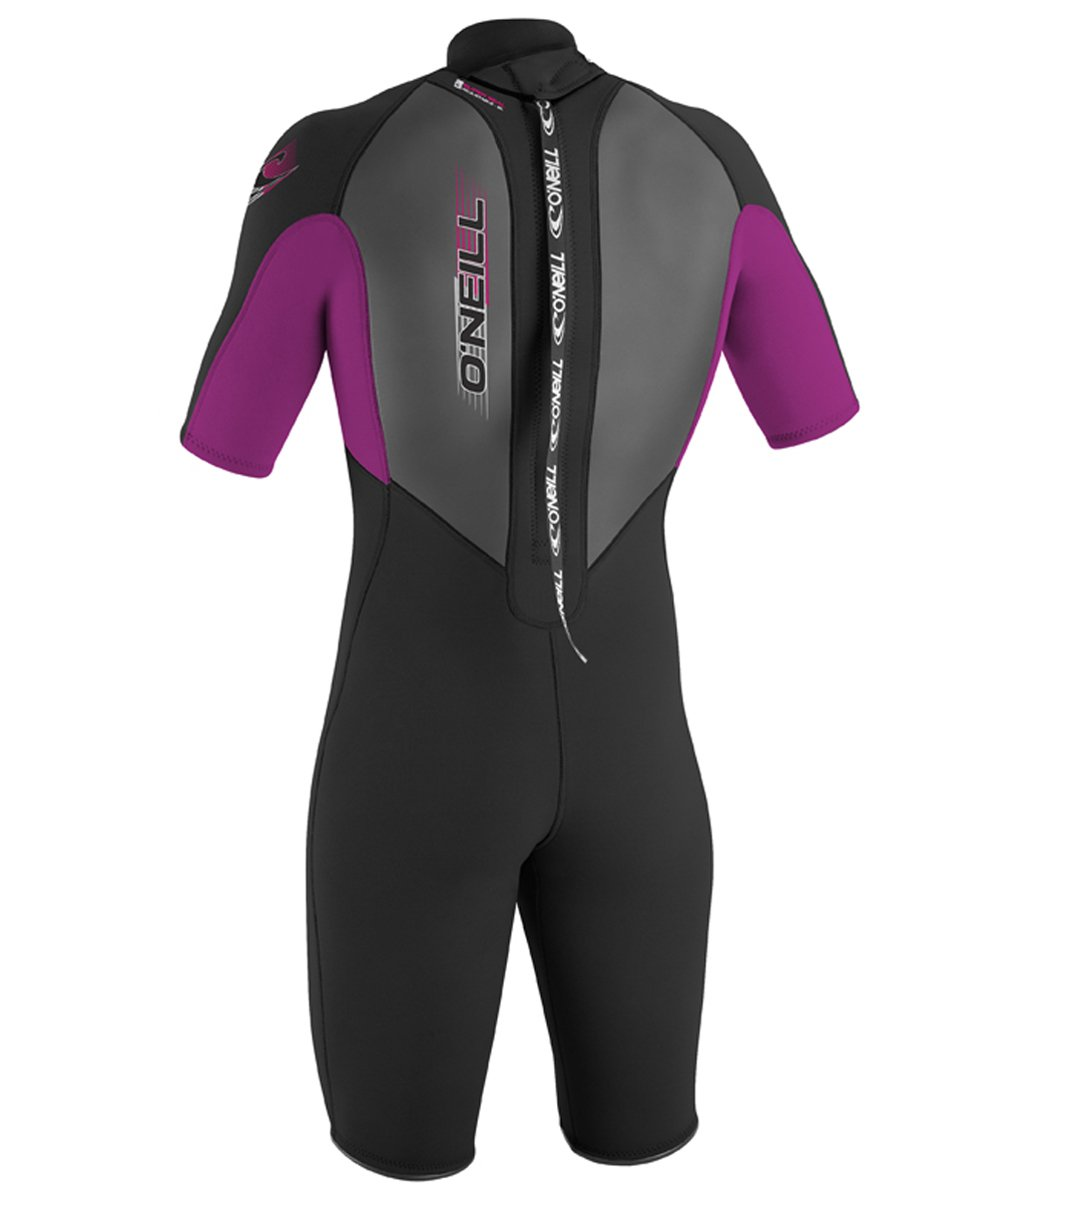 O'Neill Youth Reactor 2mm Back Zip Spring Wetsuit, Black/Pink/Black, 4 by O'Neill Wetsuits (Image #2)